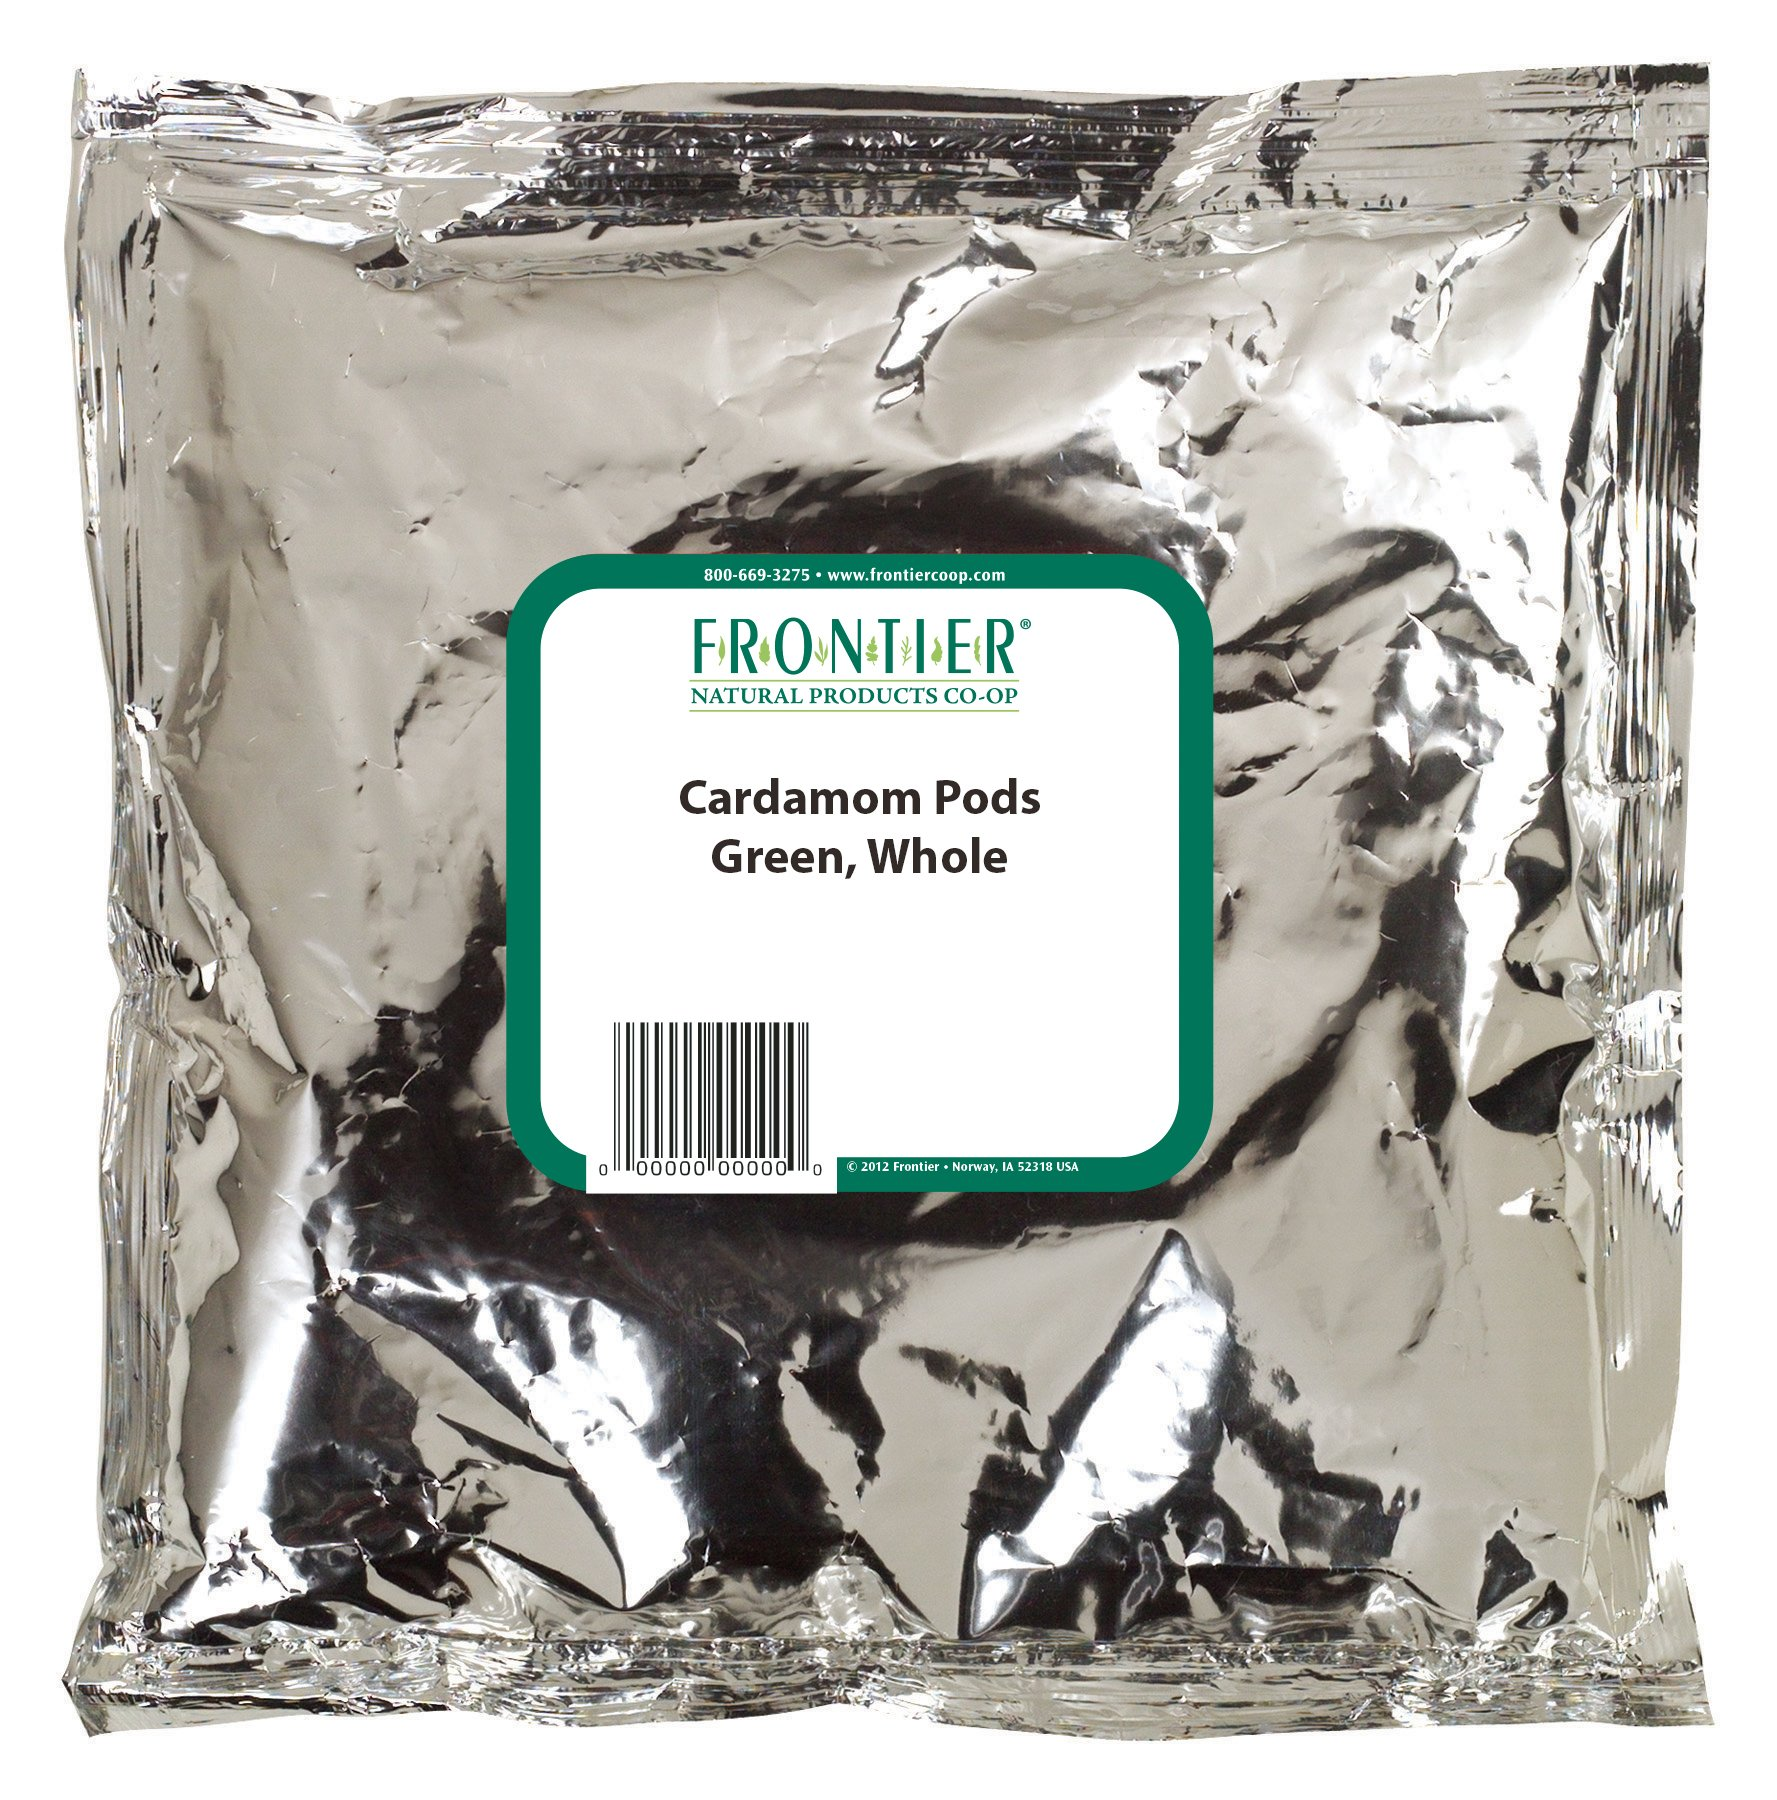 Frontier Cardamom Pods, Green, Whole, 16 Ounce Bag by Frontier (Image #1)